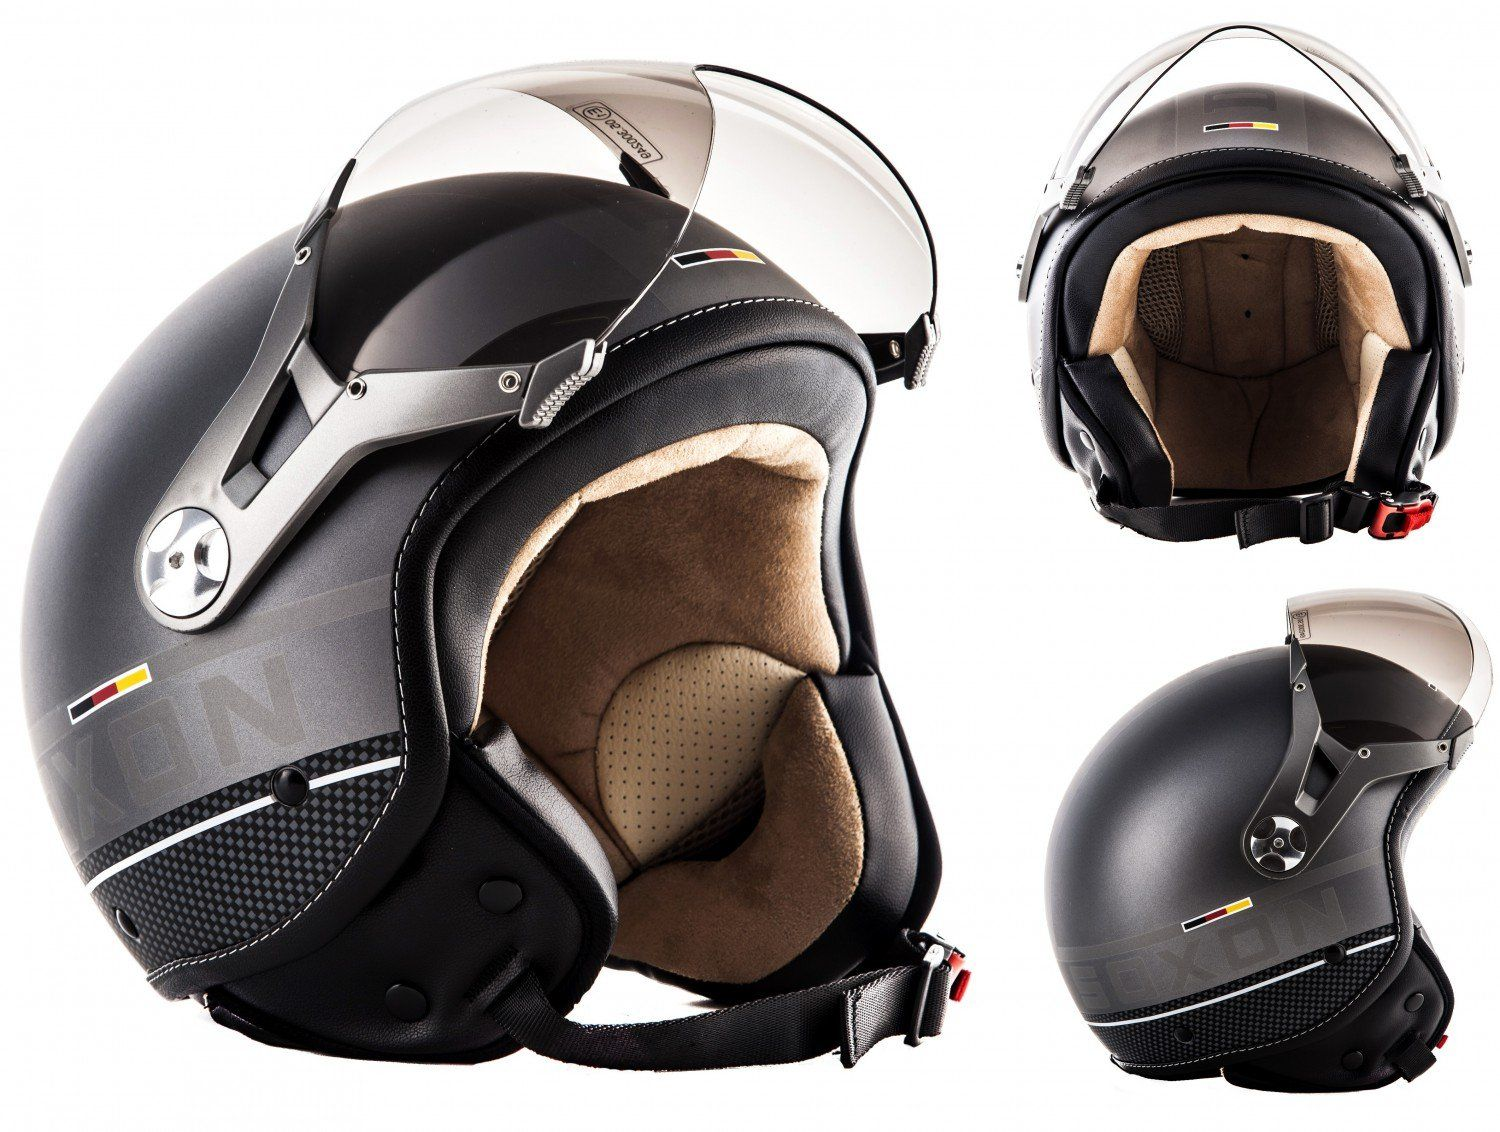 soxon sp 325 plus t a jaune casque jet moto cruiser pilot taille l the helmet. Black Bedroom Furniture Sets. Home Design Ideas